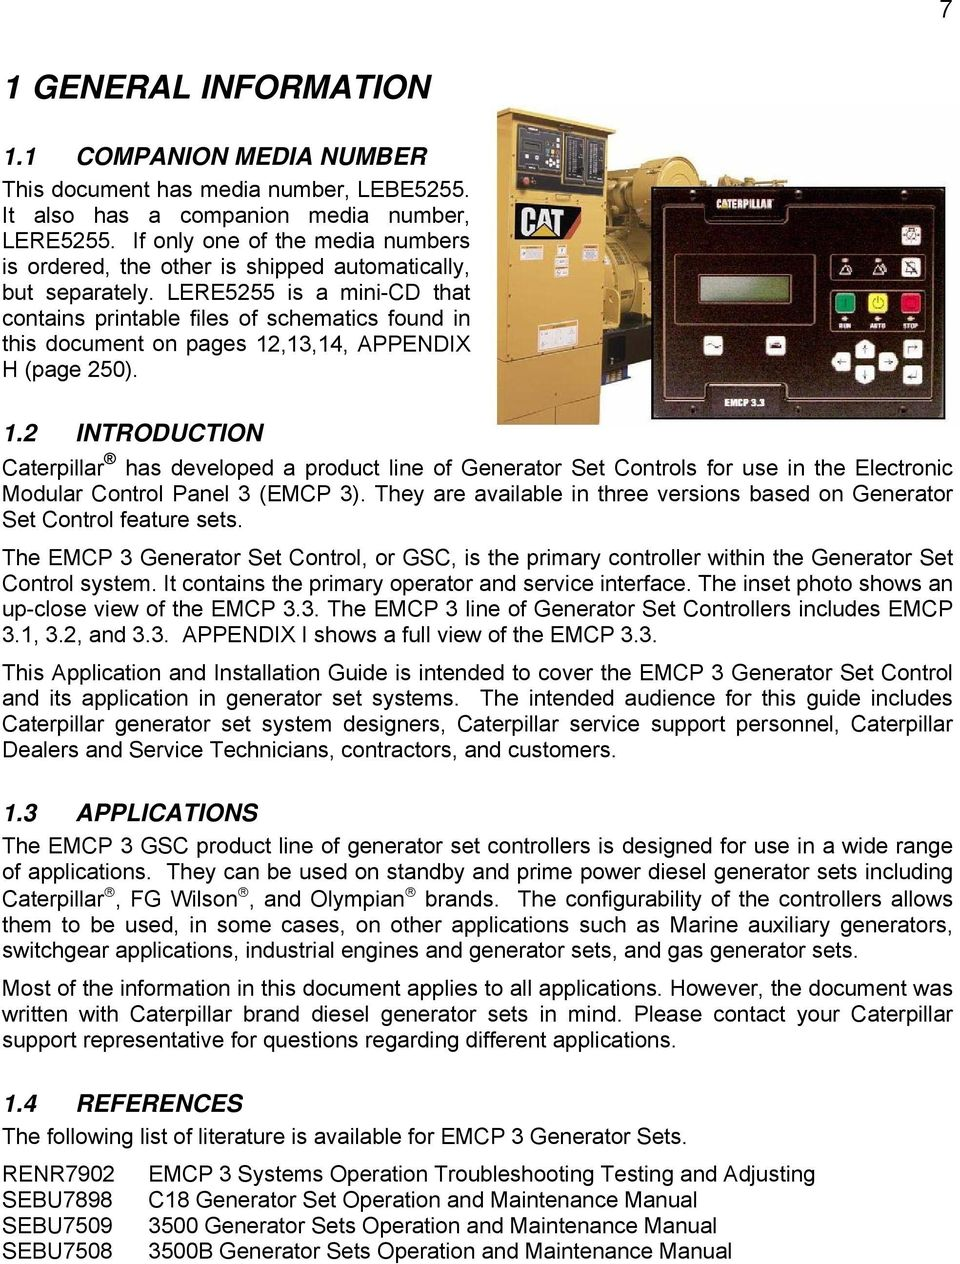 caterpillar genset wiring diagram caterpillar cat generator control panel wiring diagram jodebal com on caterpillar genset wiring diagram